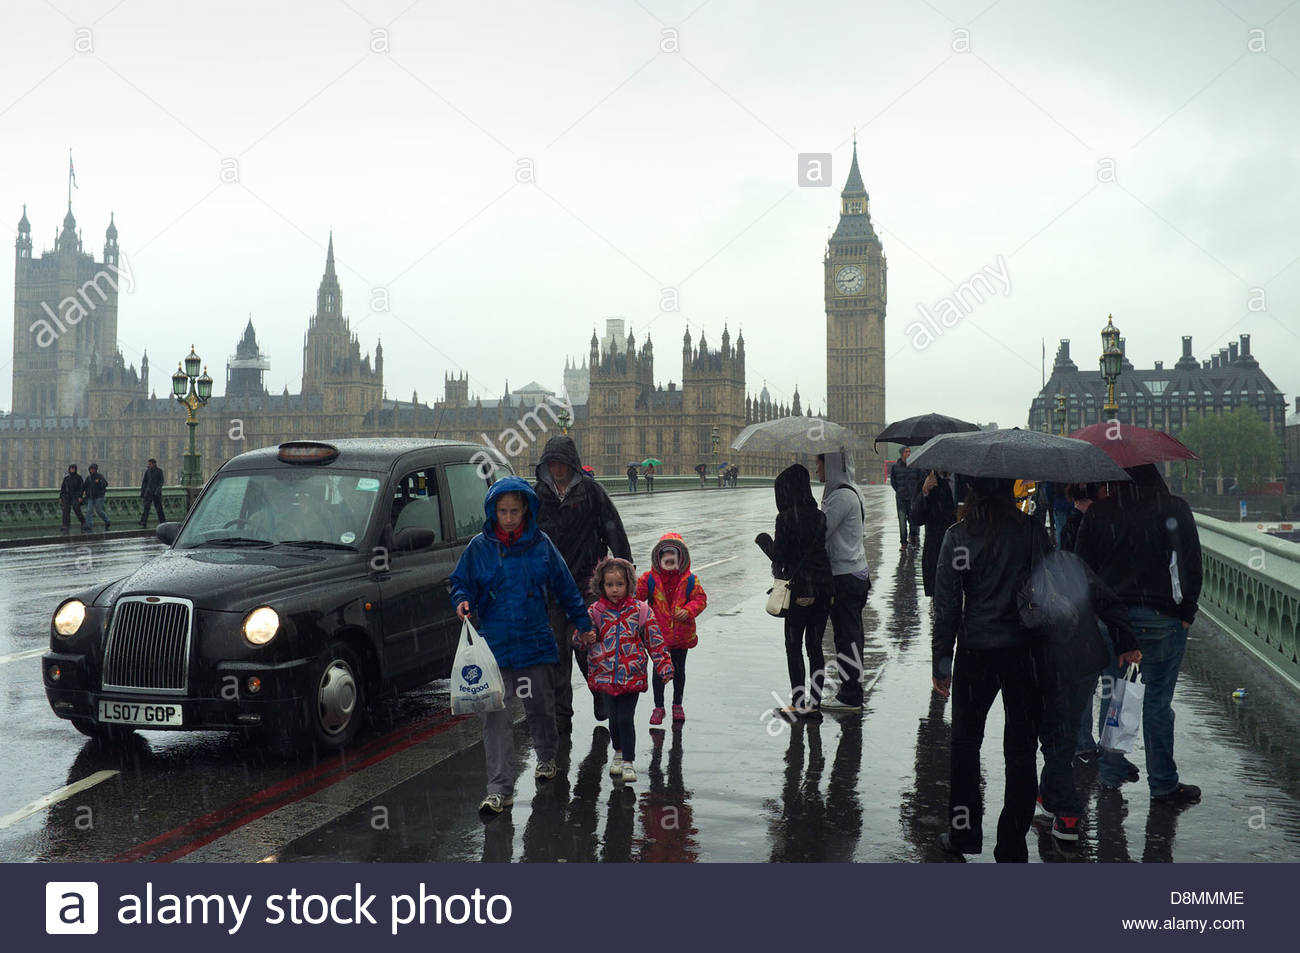 A rainy day in London, with the Houses of Parliament in the background. London, UK. Stock Photo